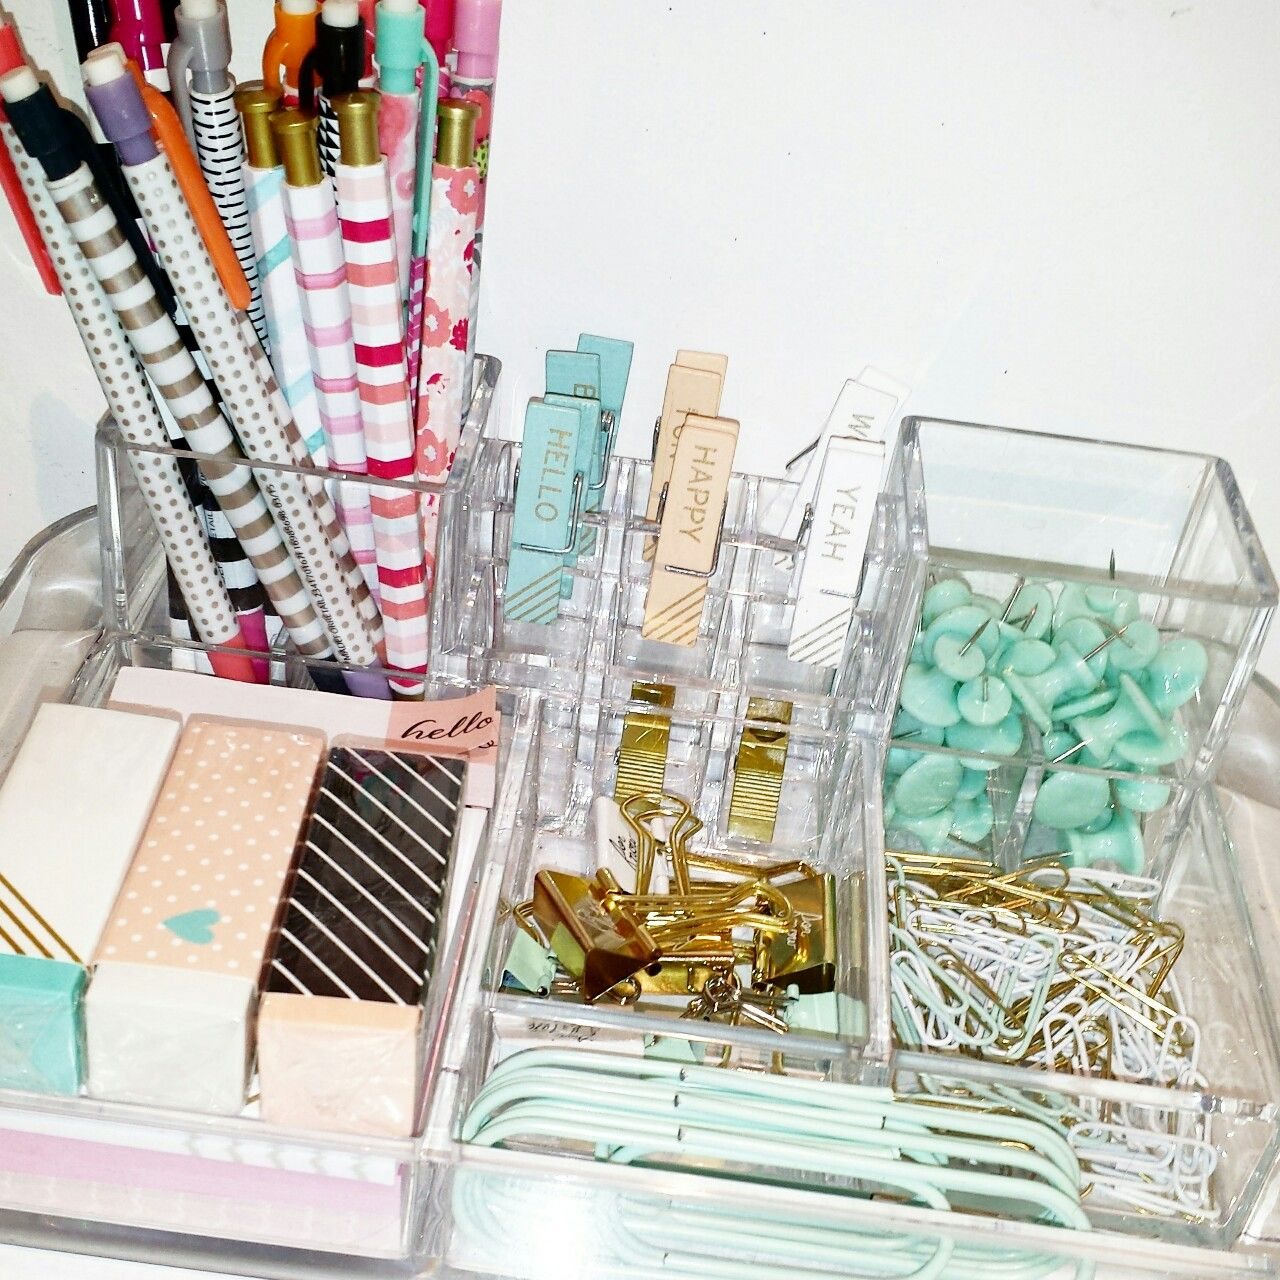 Bedroom Art Supplies: My Desk Organization! ..acrylic Organizer, Target Dollar